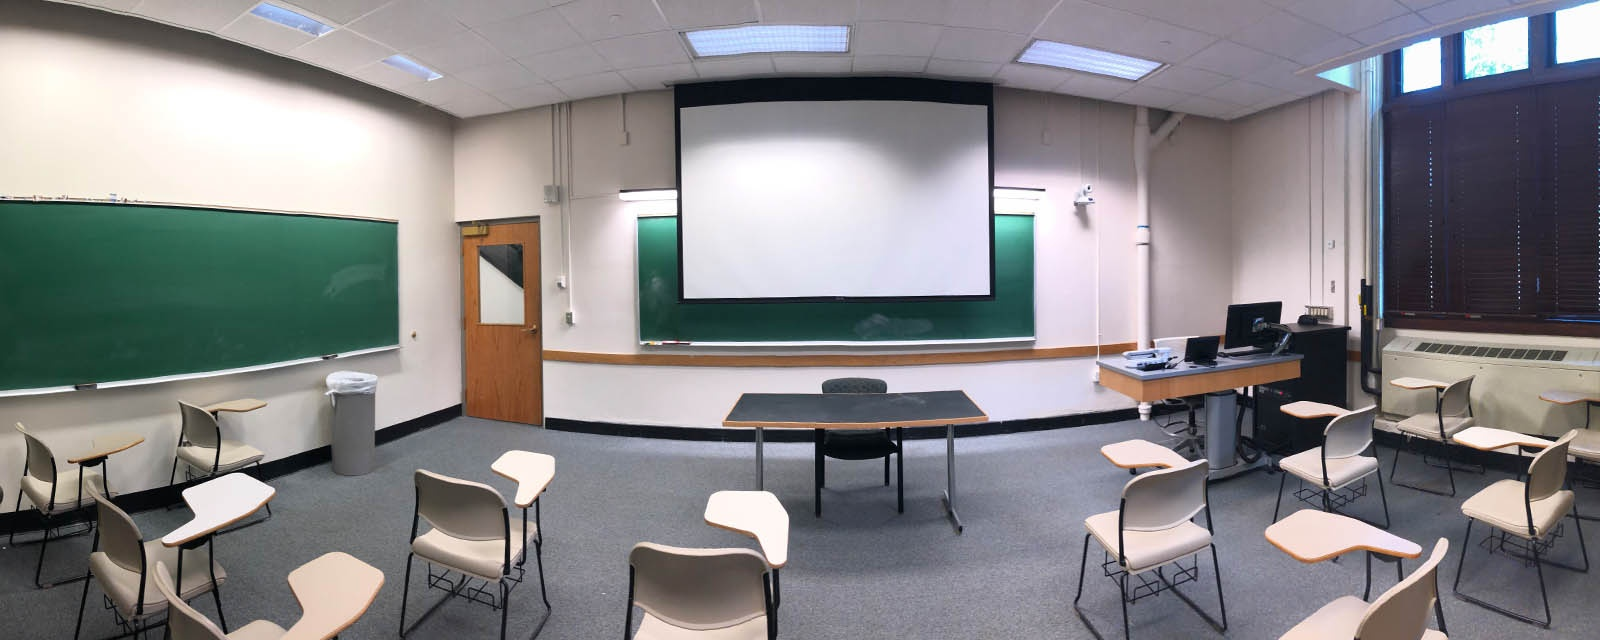 Panorama Bowne 110 from back of room to front of room, chairs moveable with desk attached, teaching station on left side of room after entering.